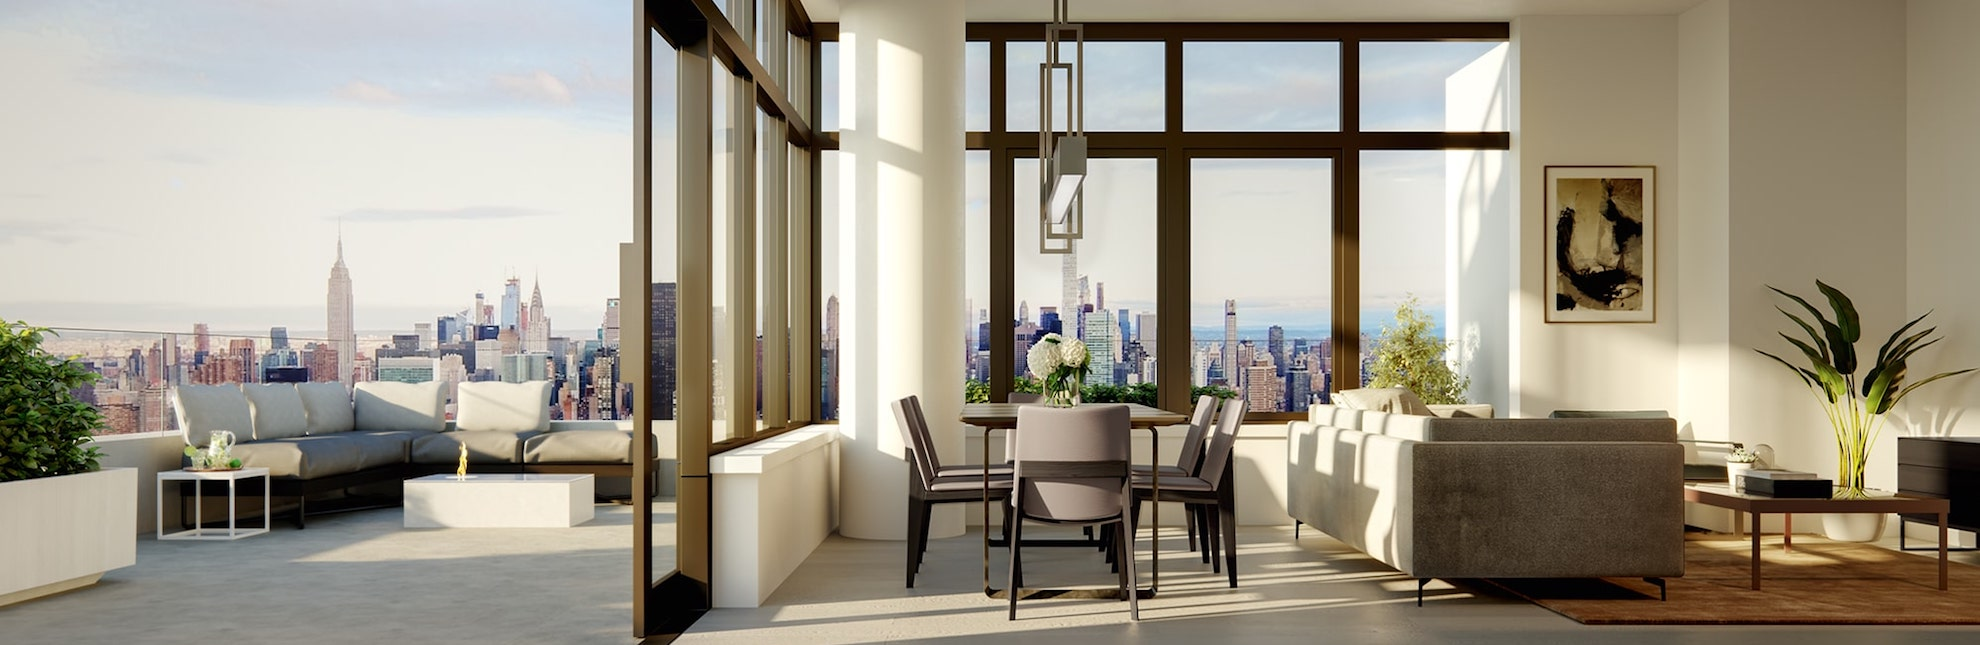 155 condos include outdoor terraces with sweeping, unobstructed view.